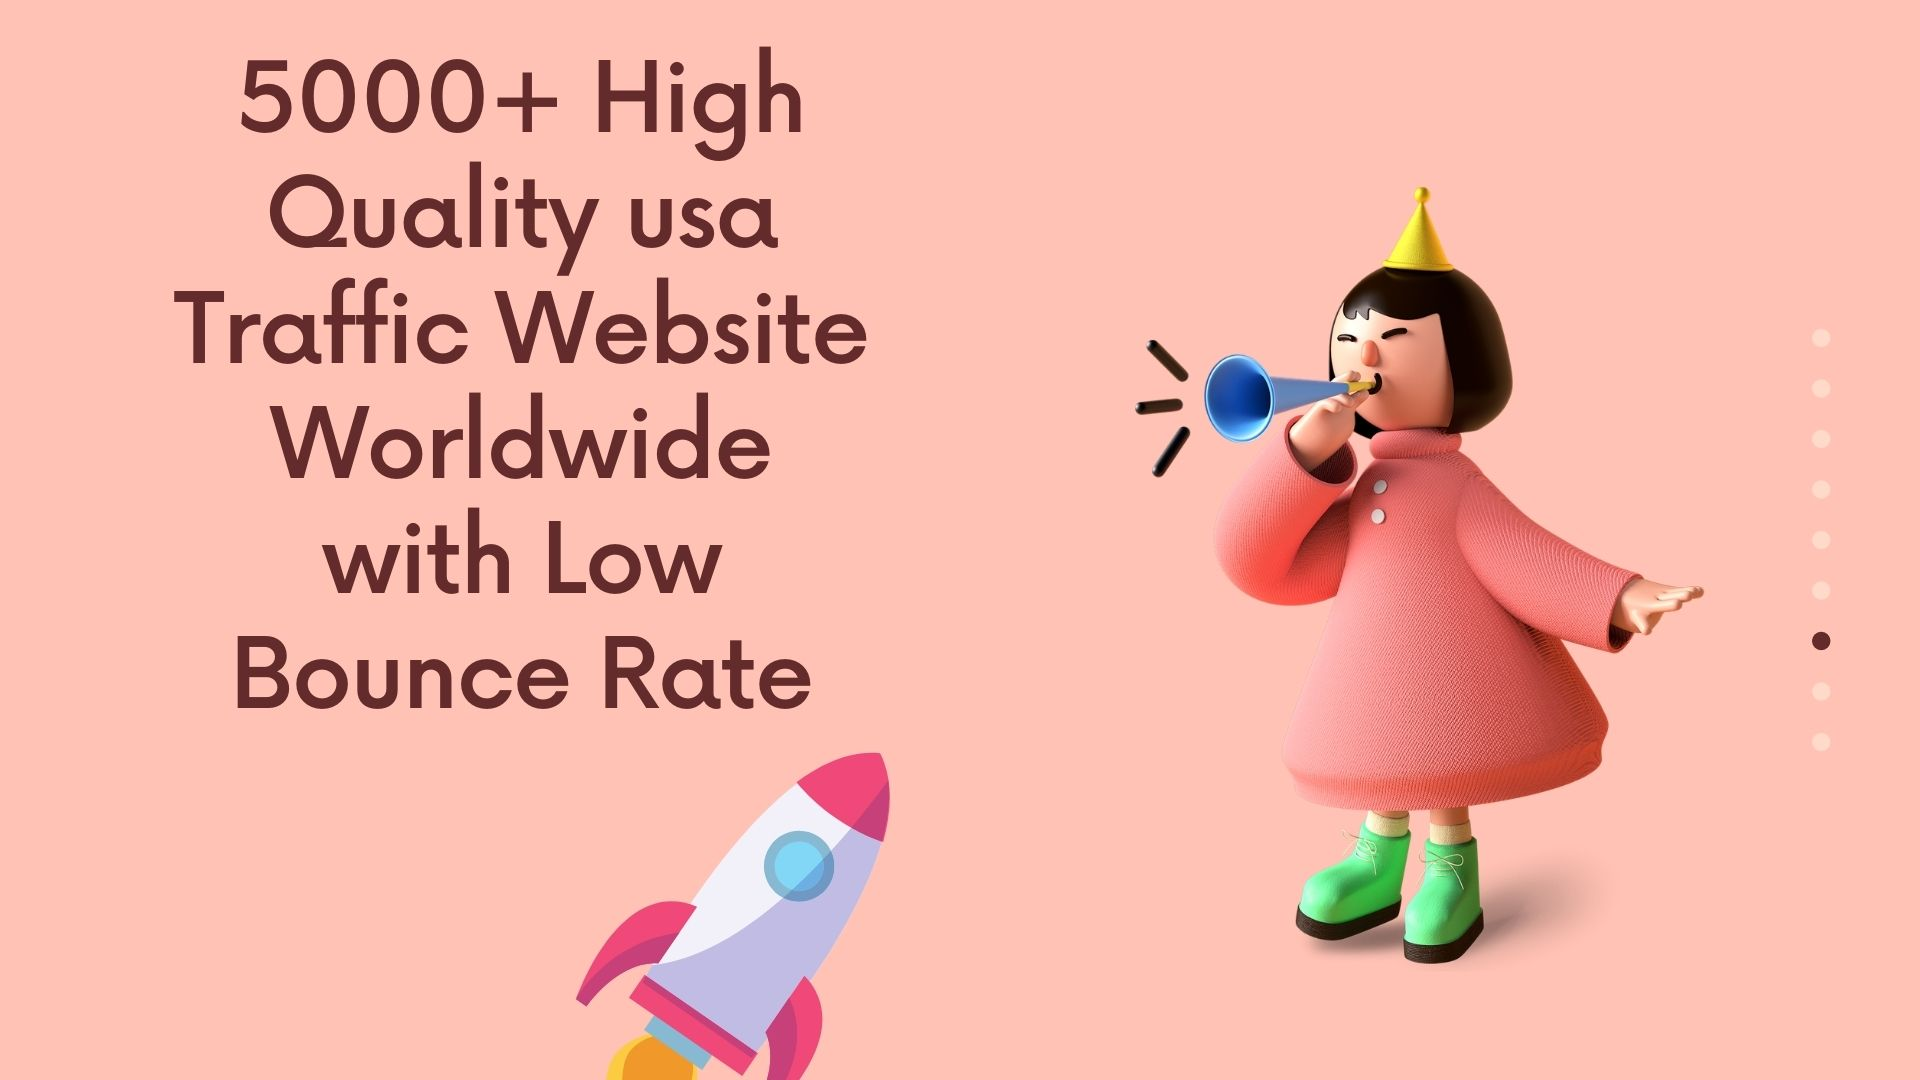 5000+ High Quality usa Traffic Website Worldwide with Low Bounce Rate